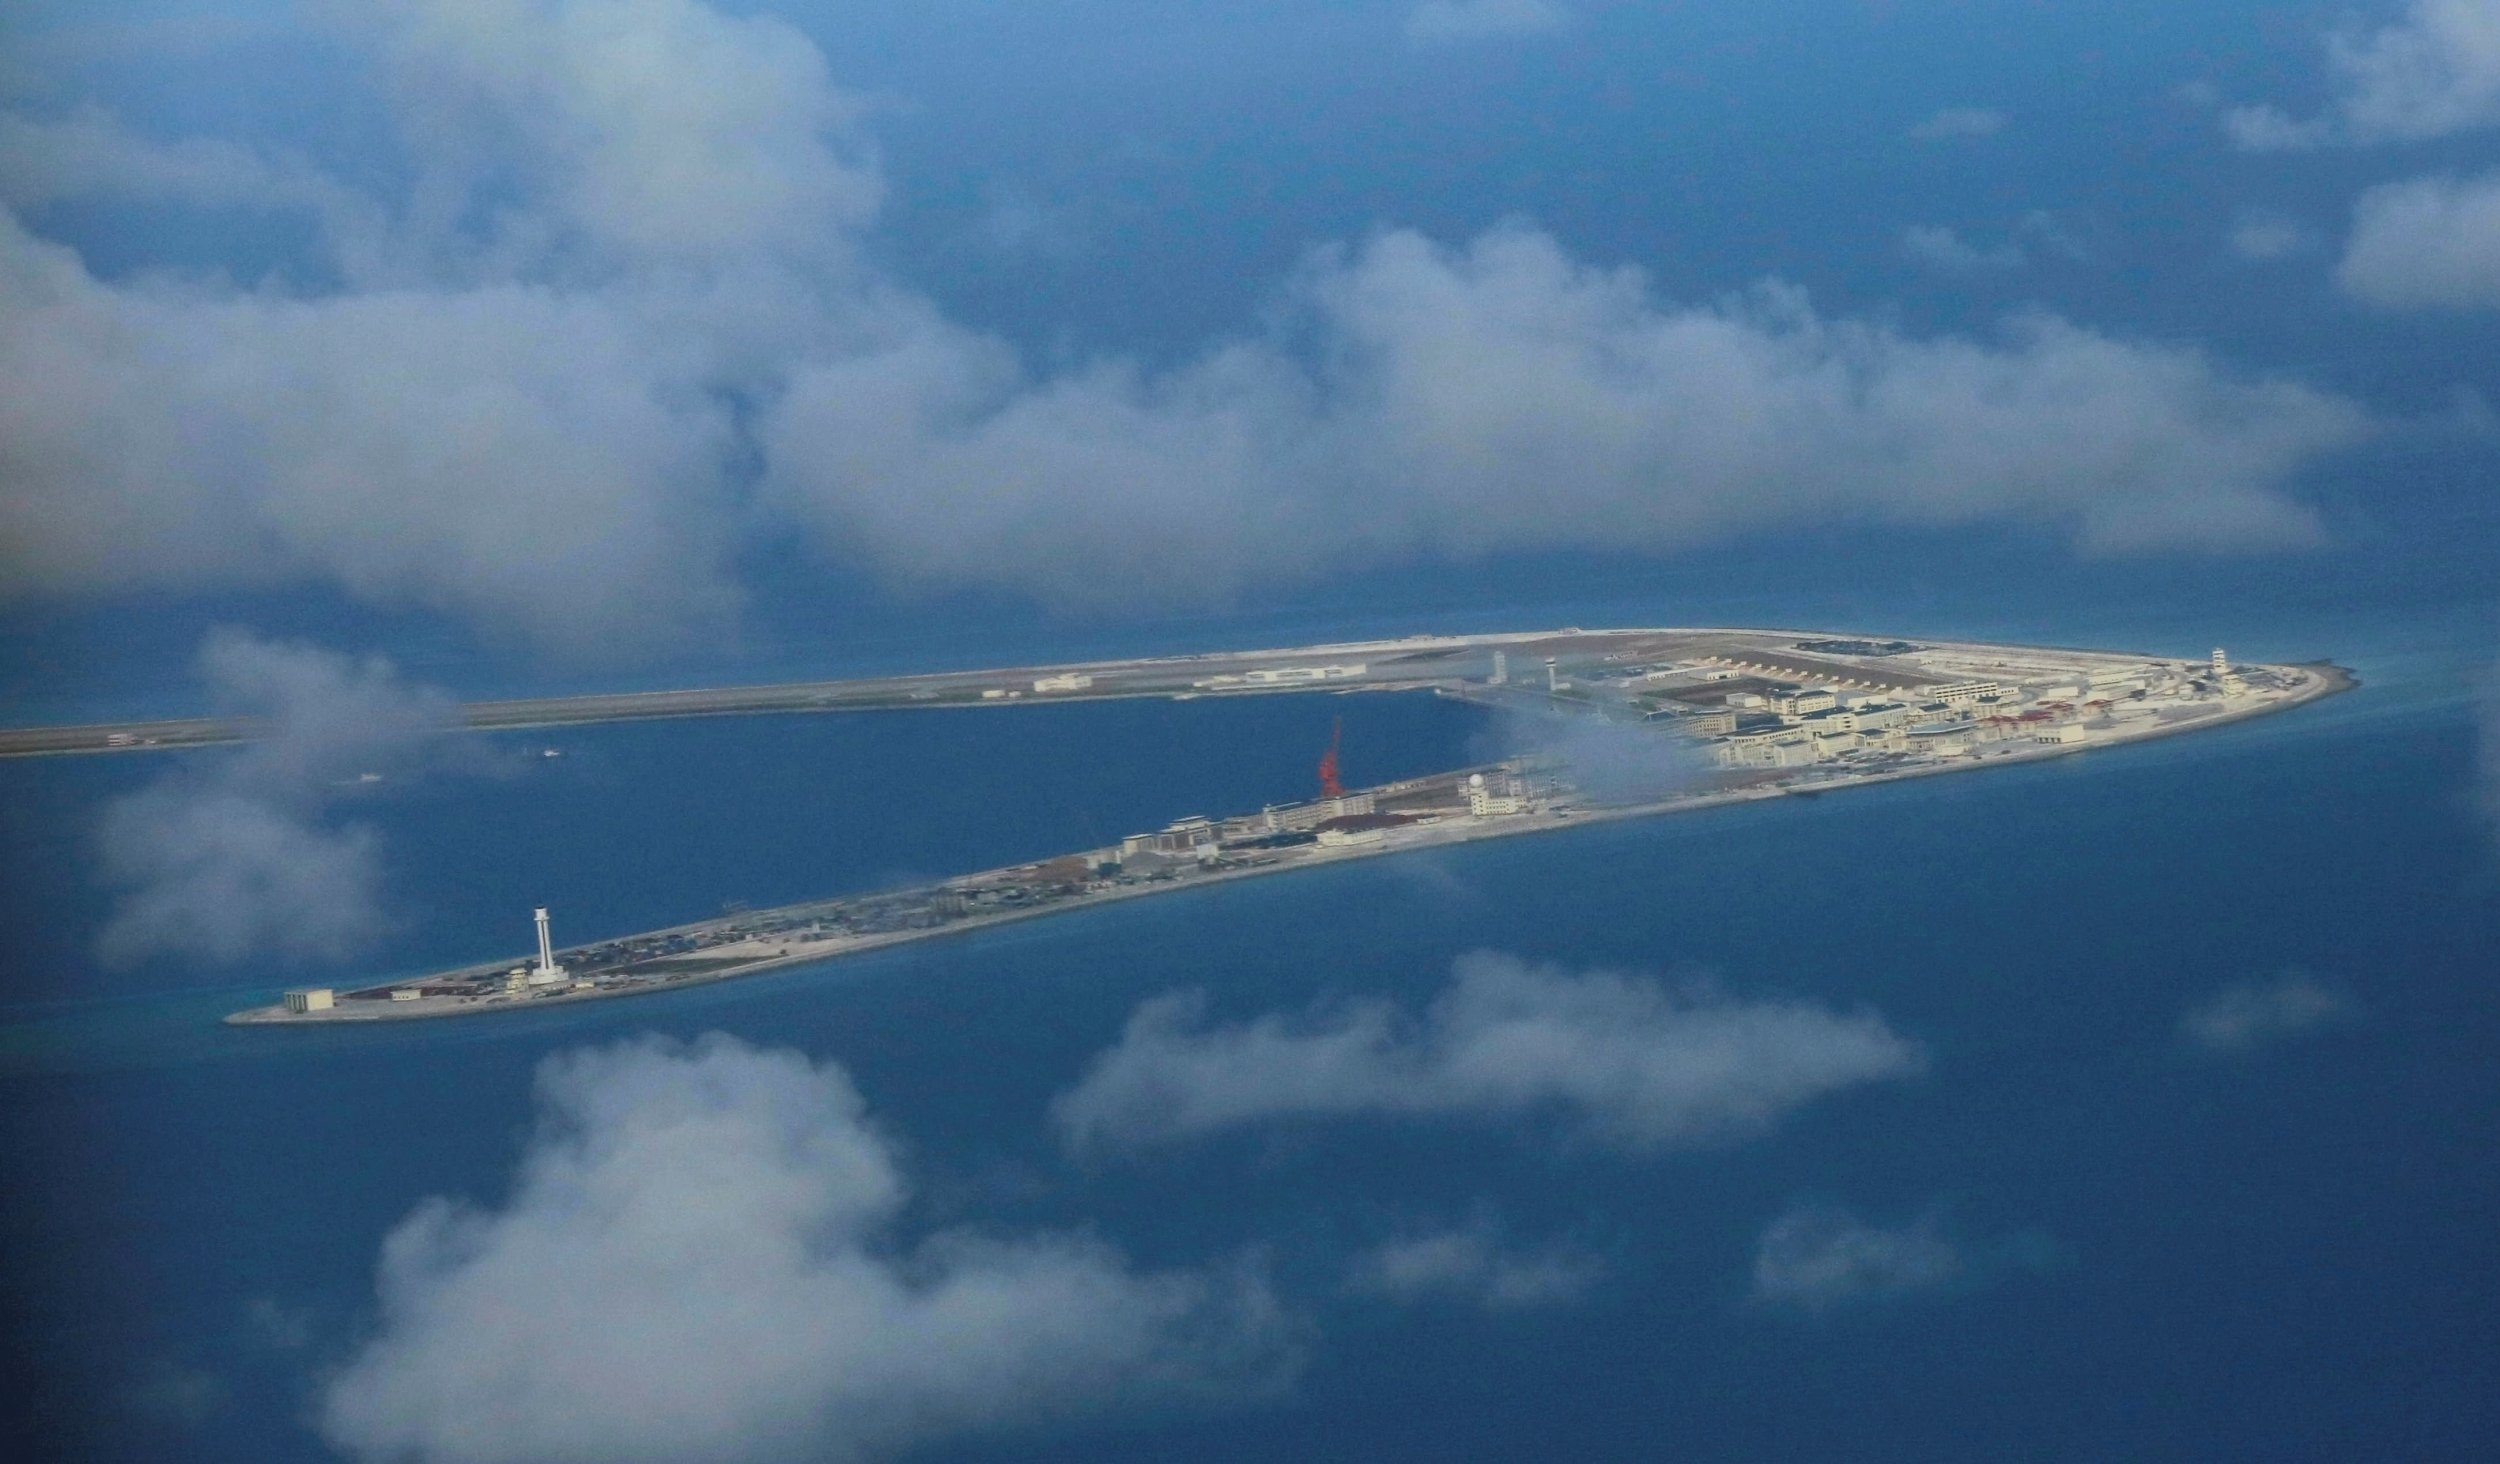 Spratly Islands in disputed South China Sea